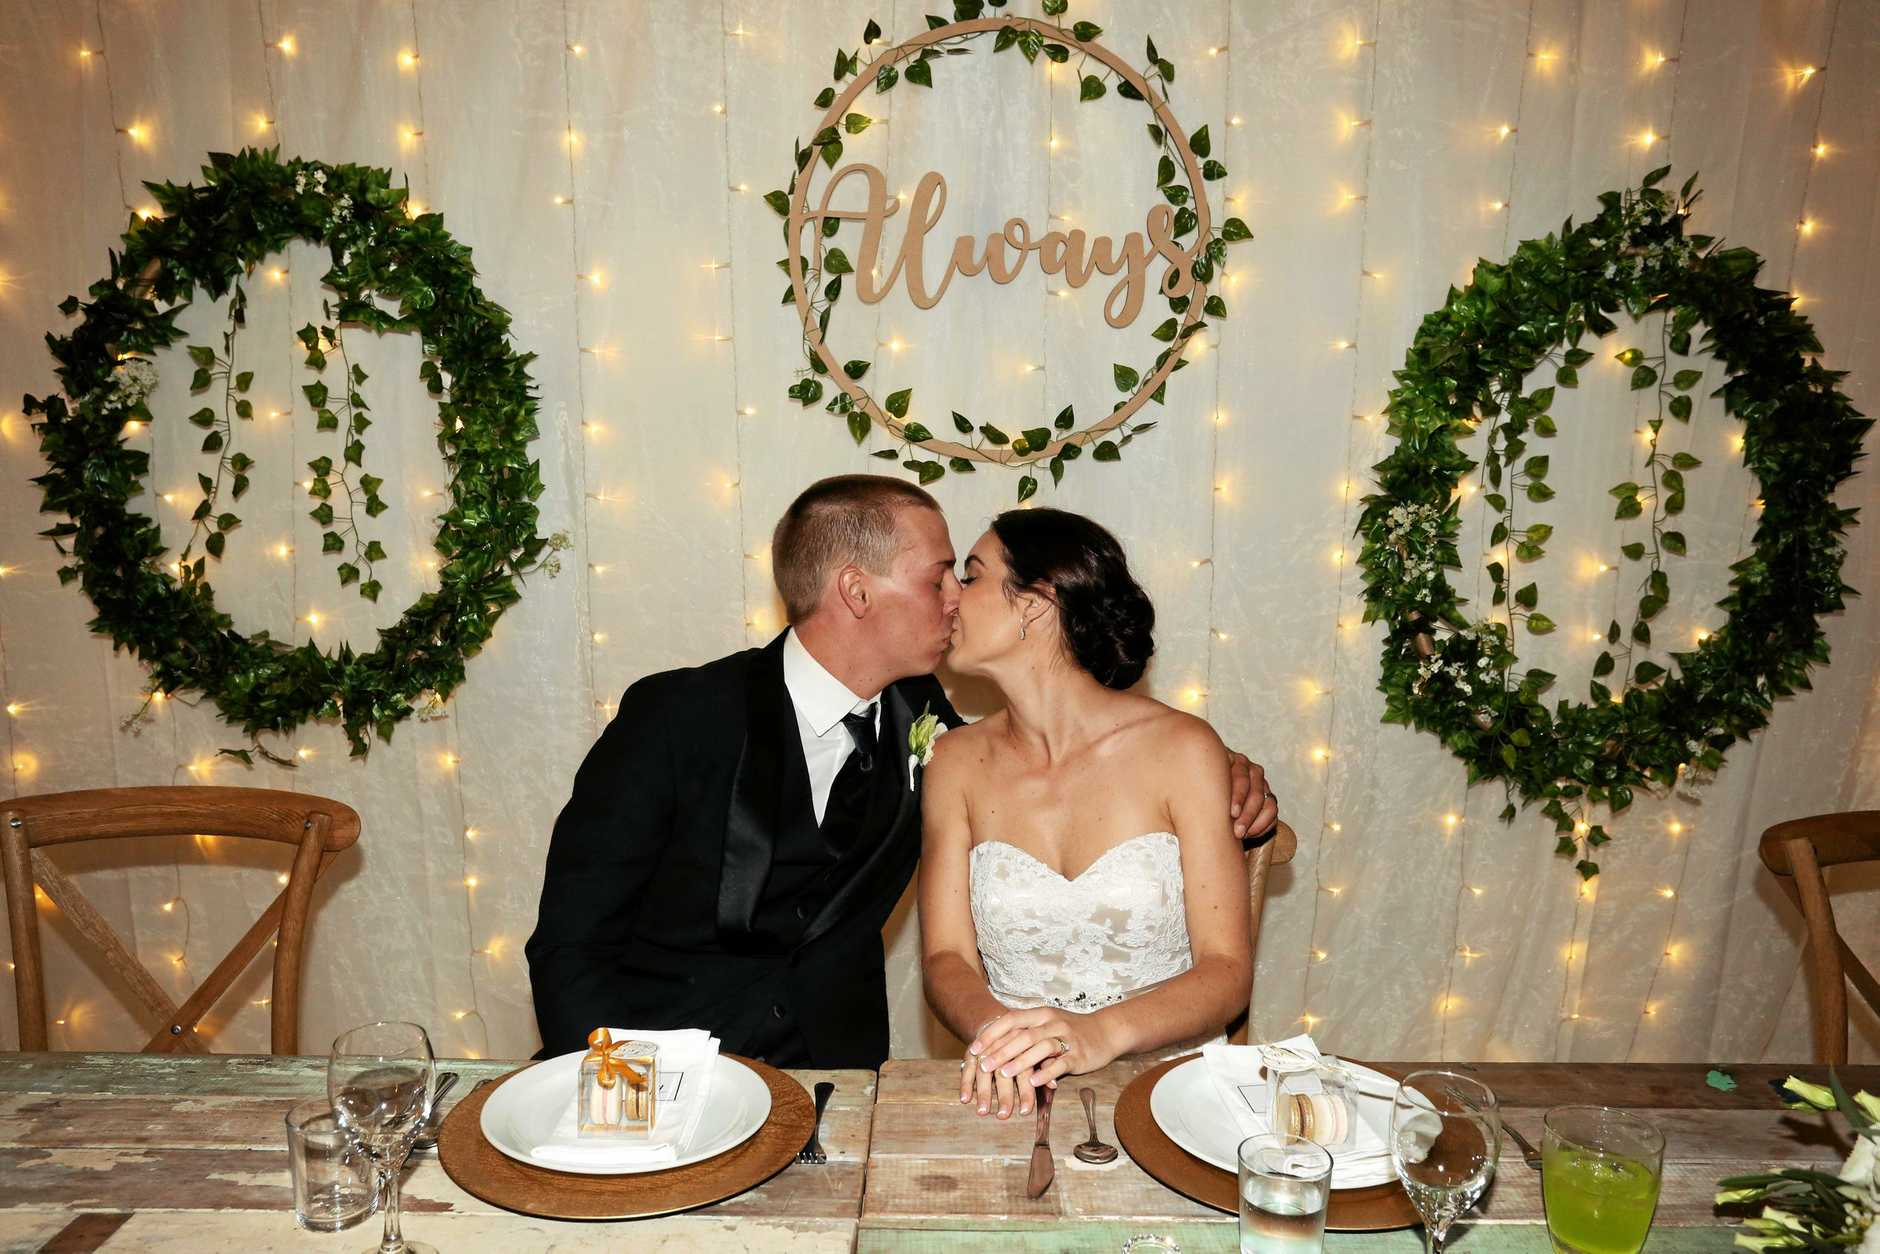 Toni Ledger has tied the knot with Tylar Crack.